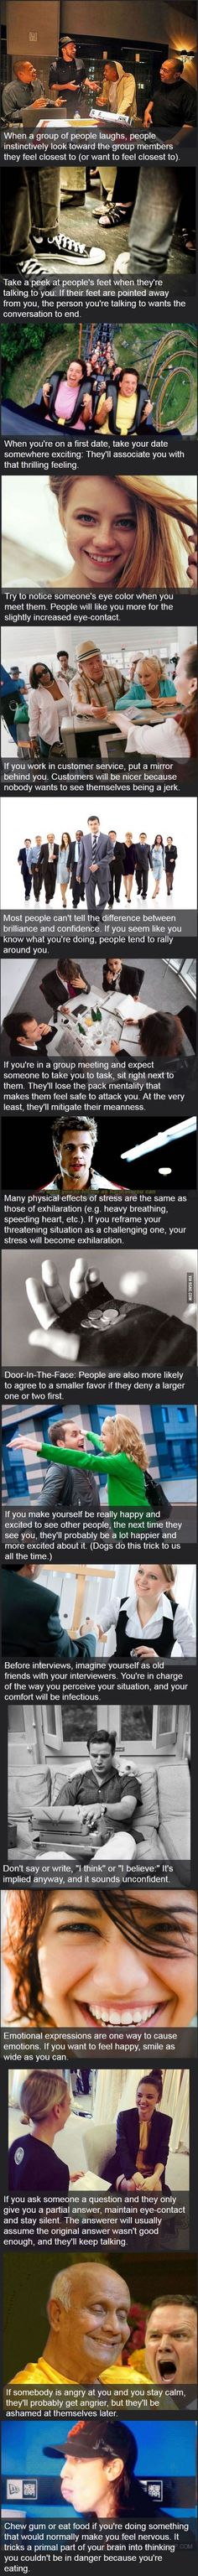 16 Useful Mental Life Hacks More